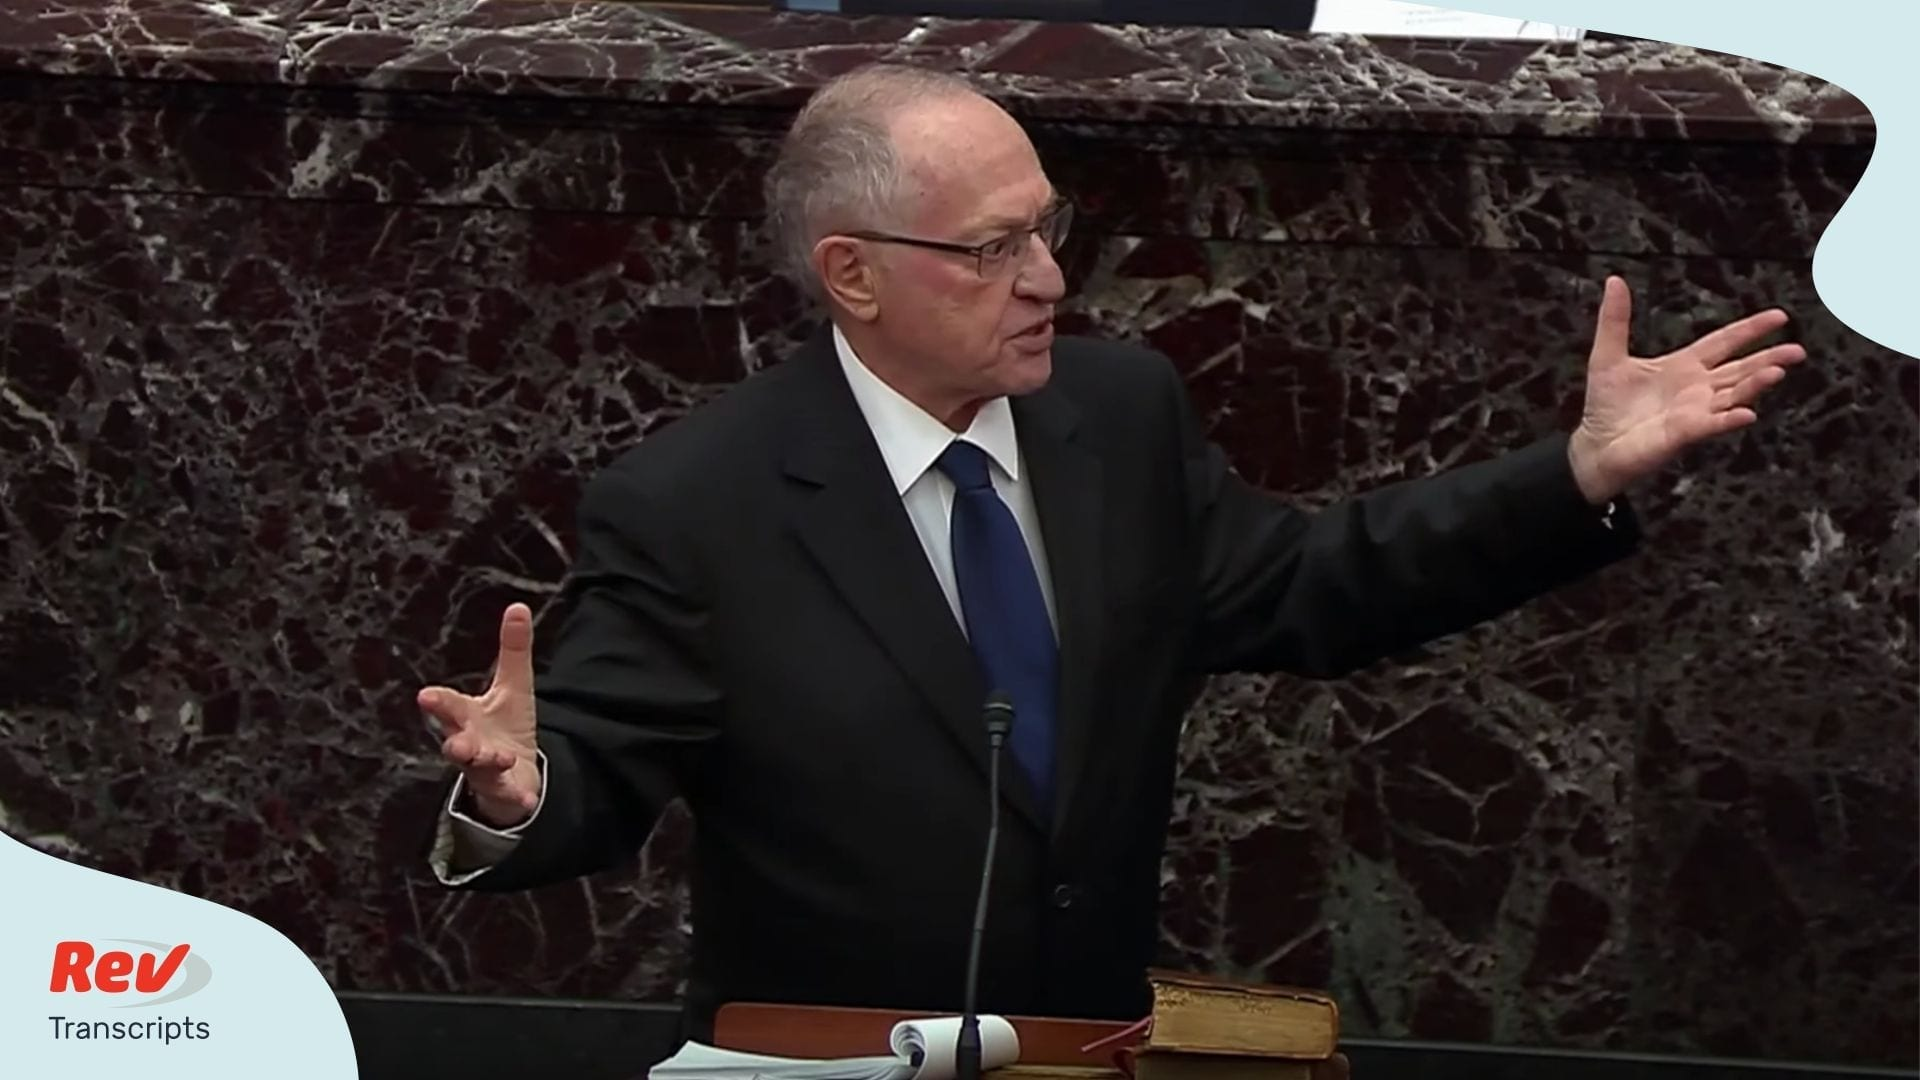 Alan Deshowitz Defense Trial Trump Impeachment Transcript